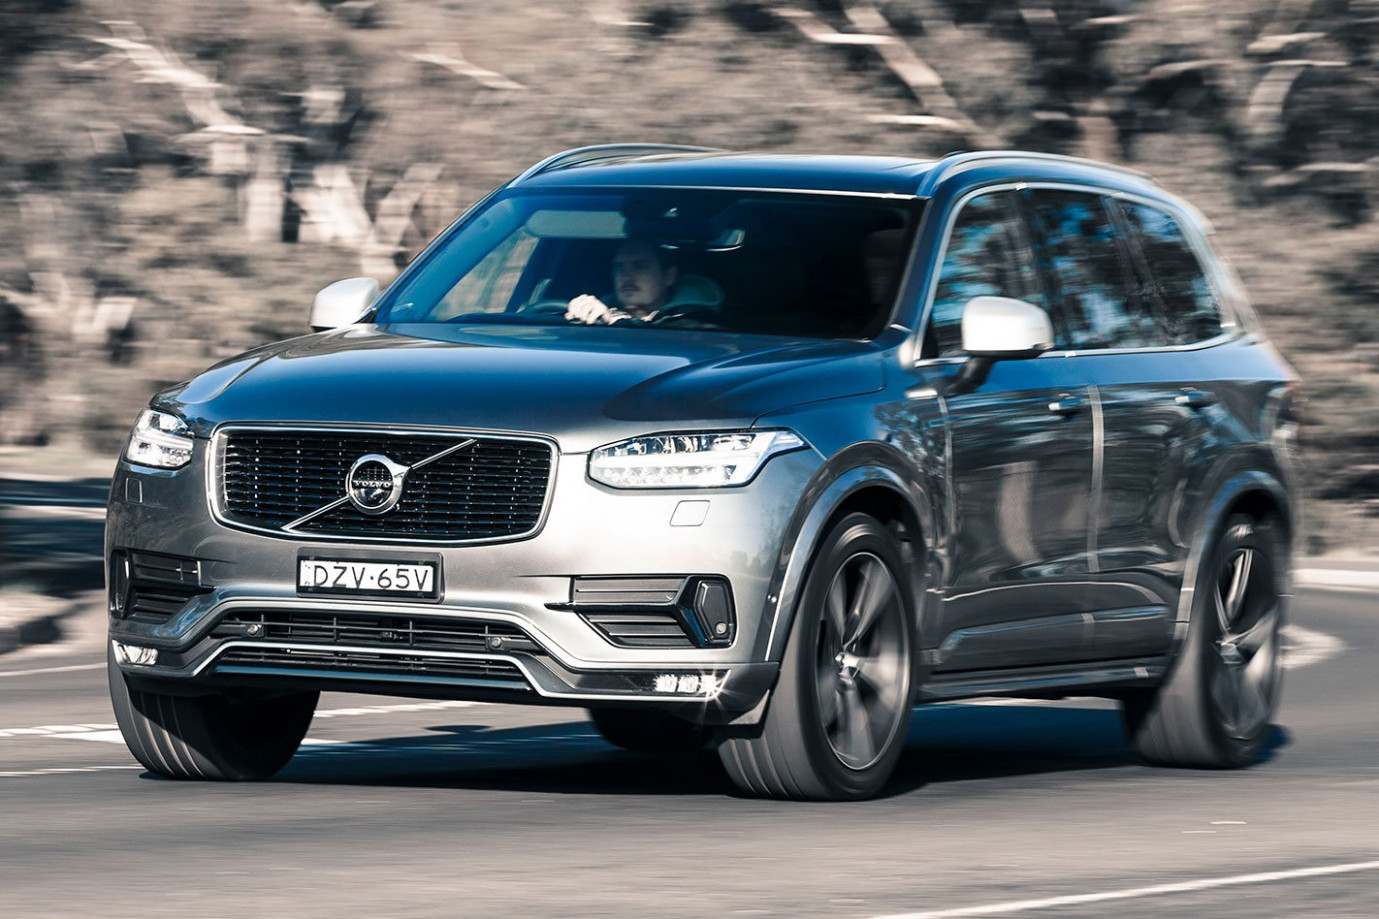 Rumors Volvo Xc90 2022